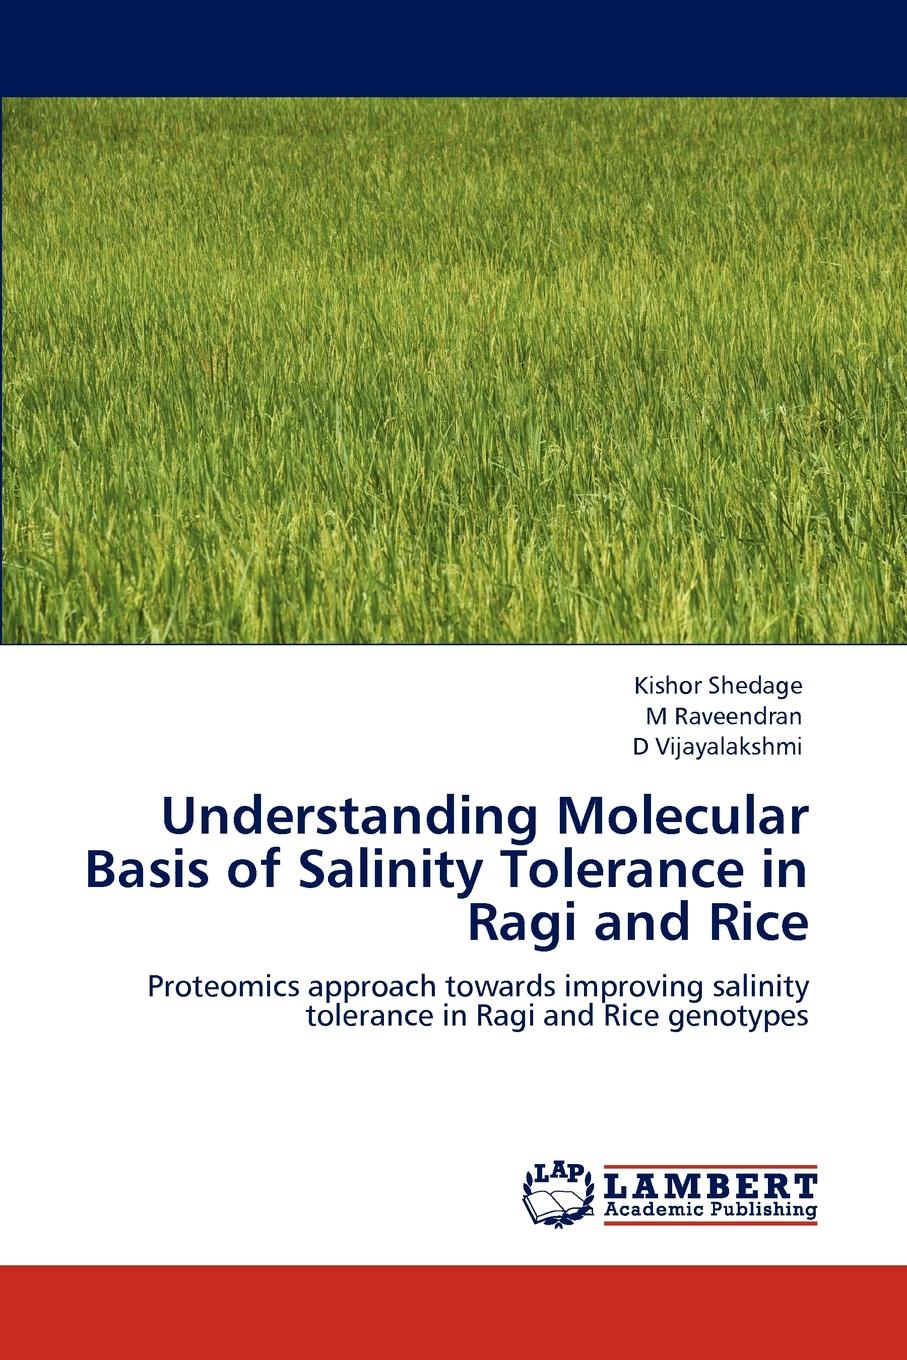 Kishor Shedage, M Raveendran, D Vijayalakshmi Understanding Molecular Basis of Salinity Tolerance in Ragi and Rice gill sarvajeet s climate change and plant abiotic stress tolerance